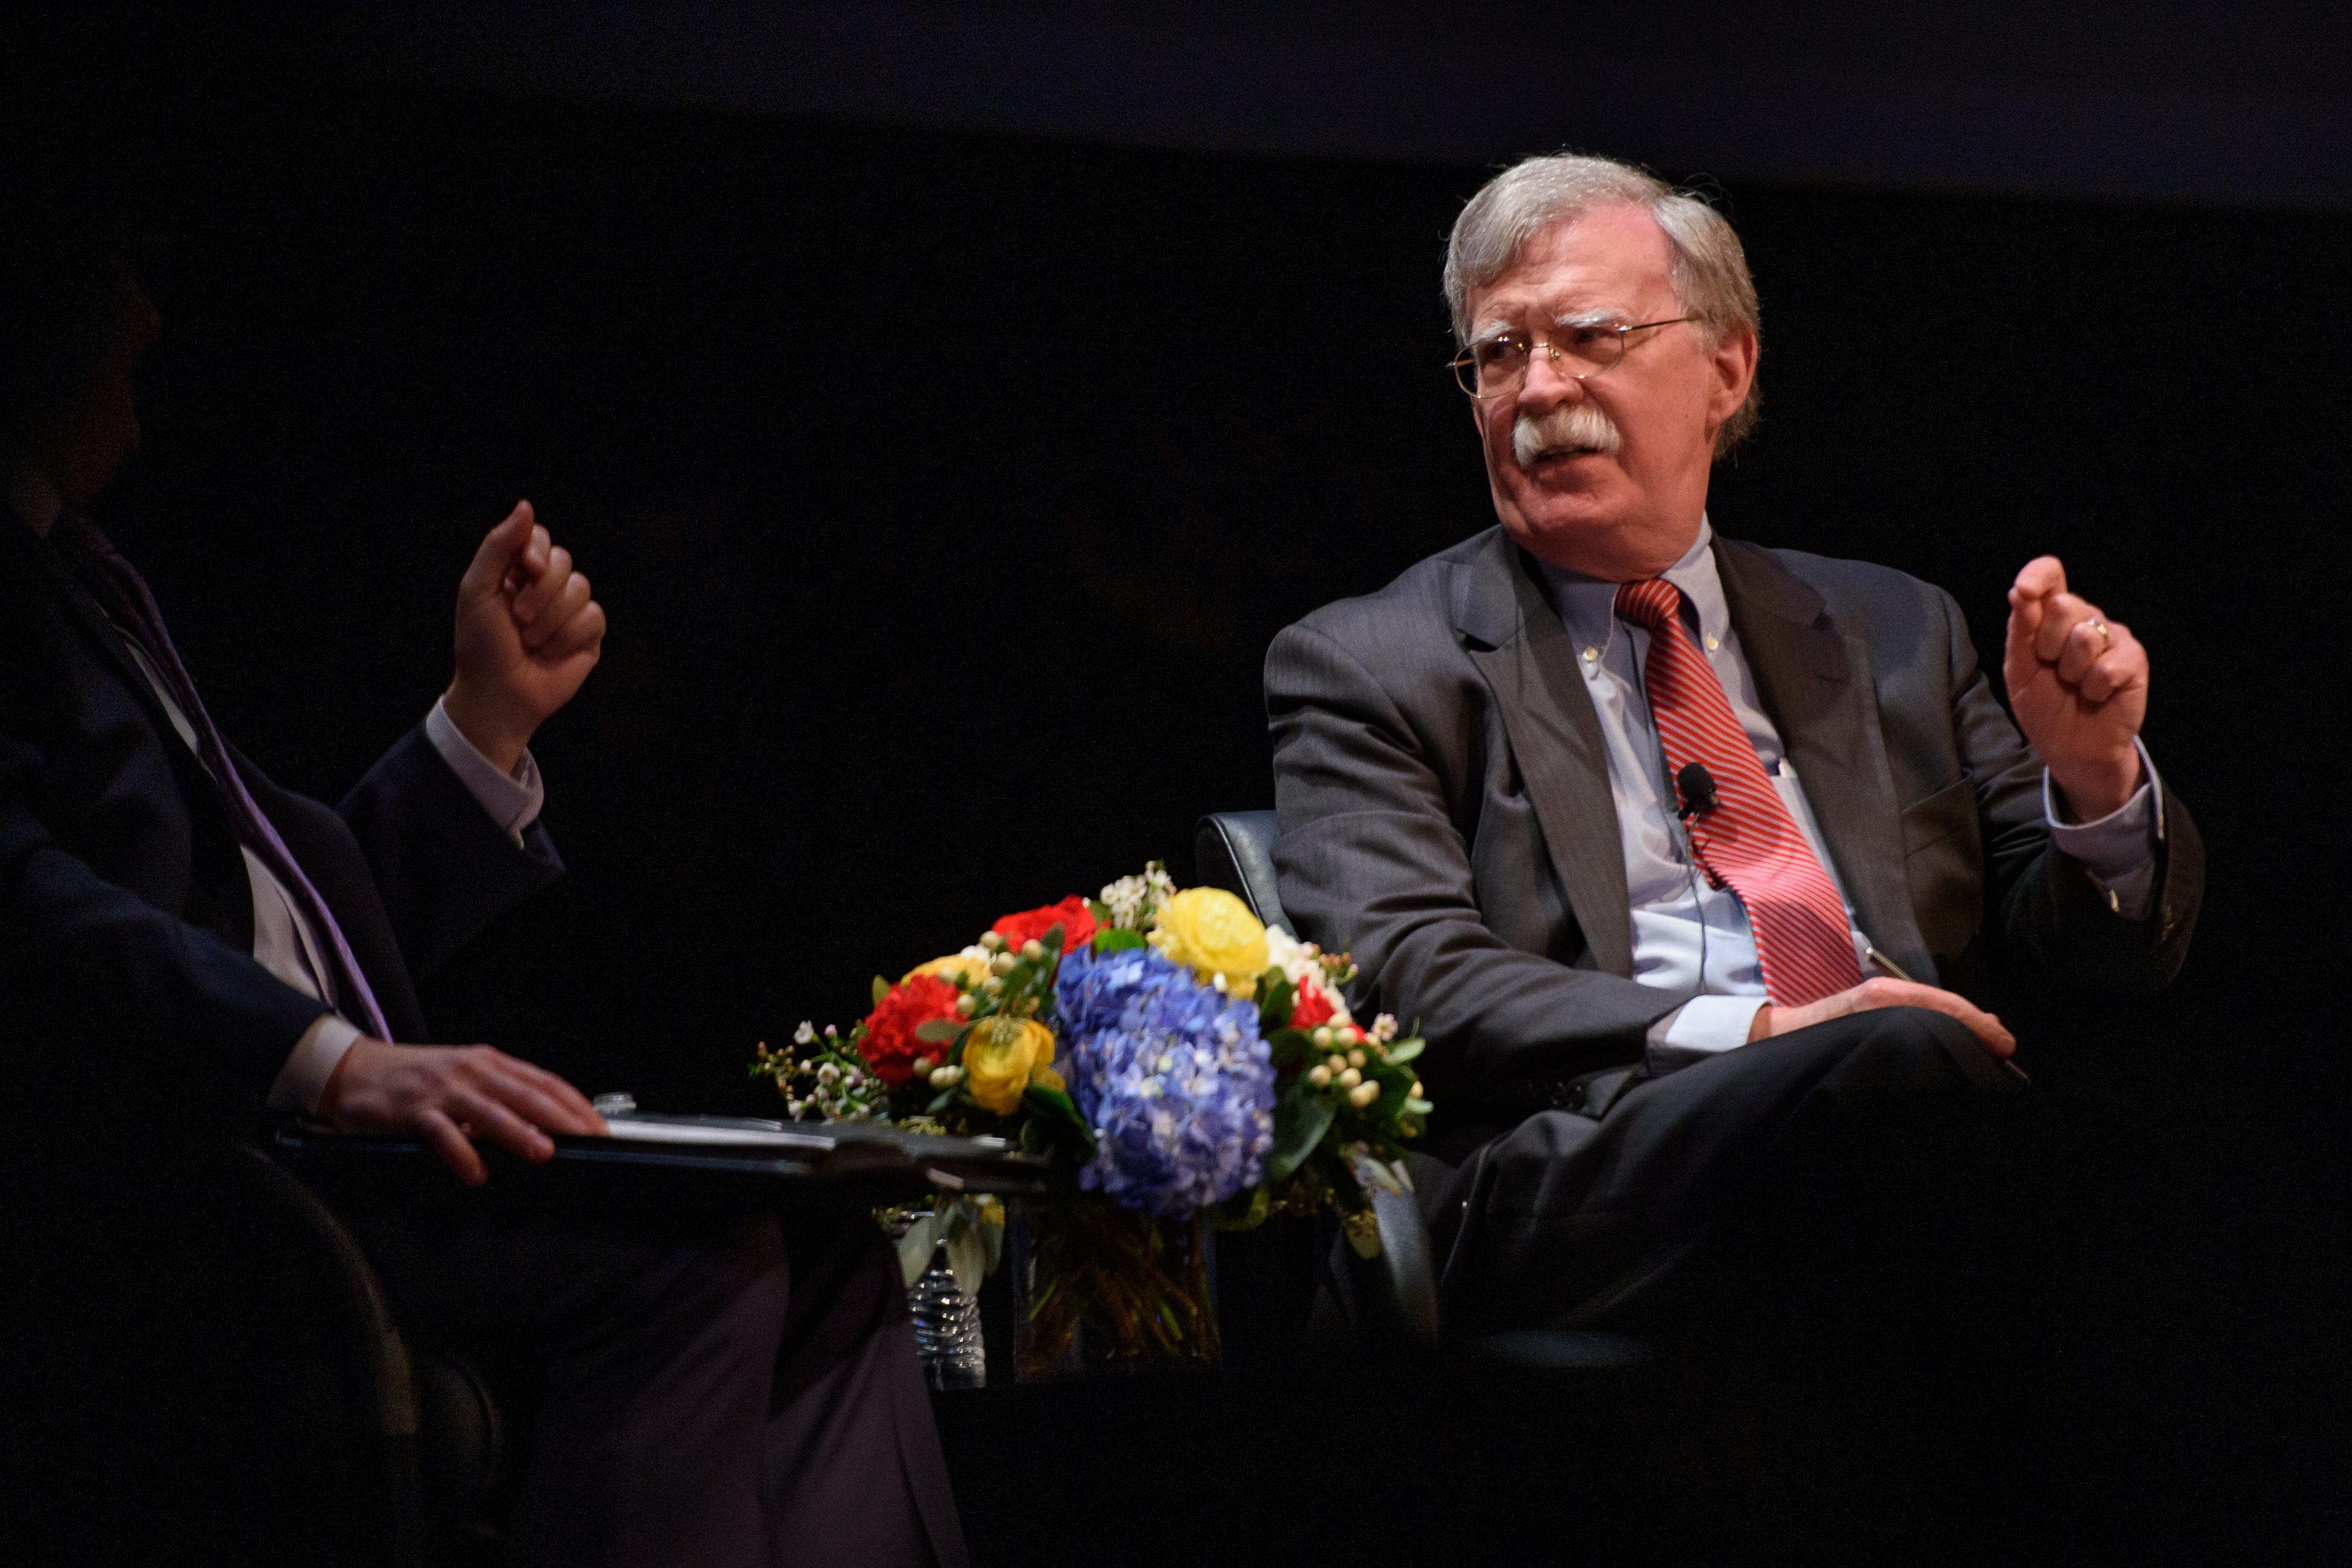 China isn't helping Trump win reelection, as Bolton's book suggests